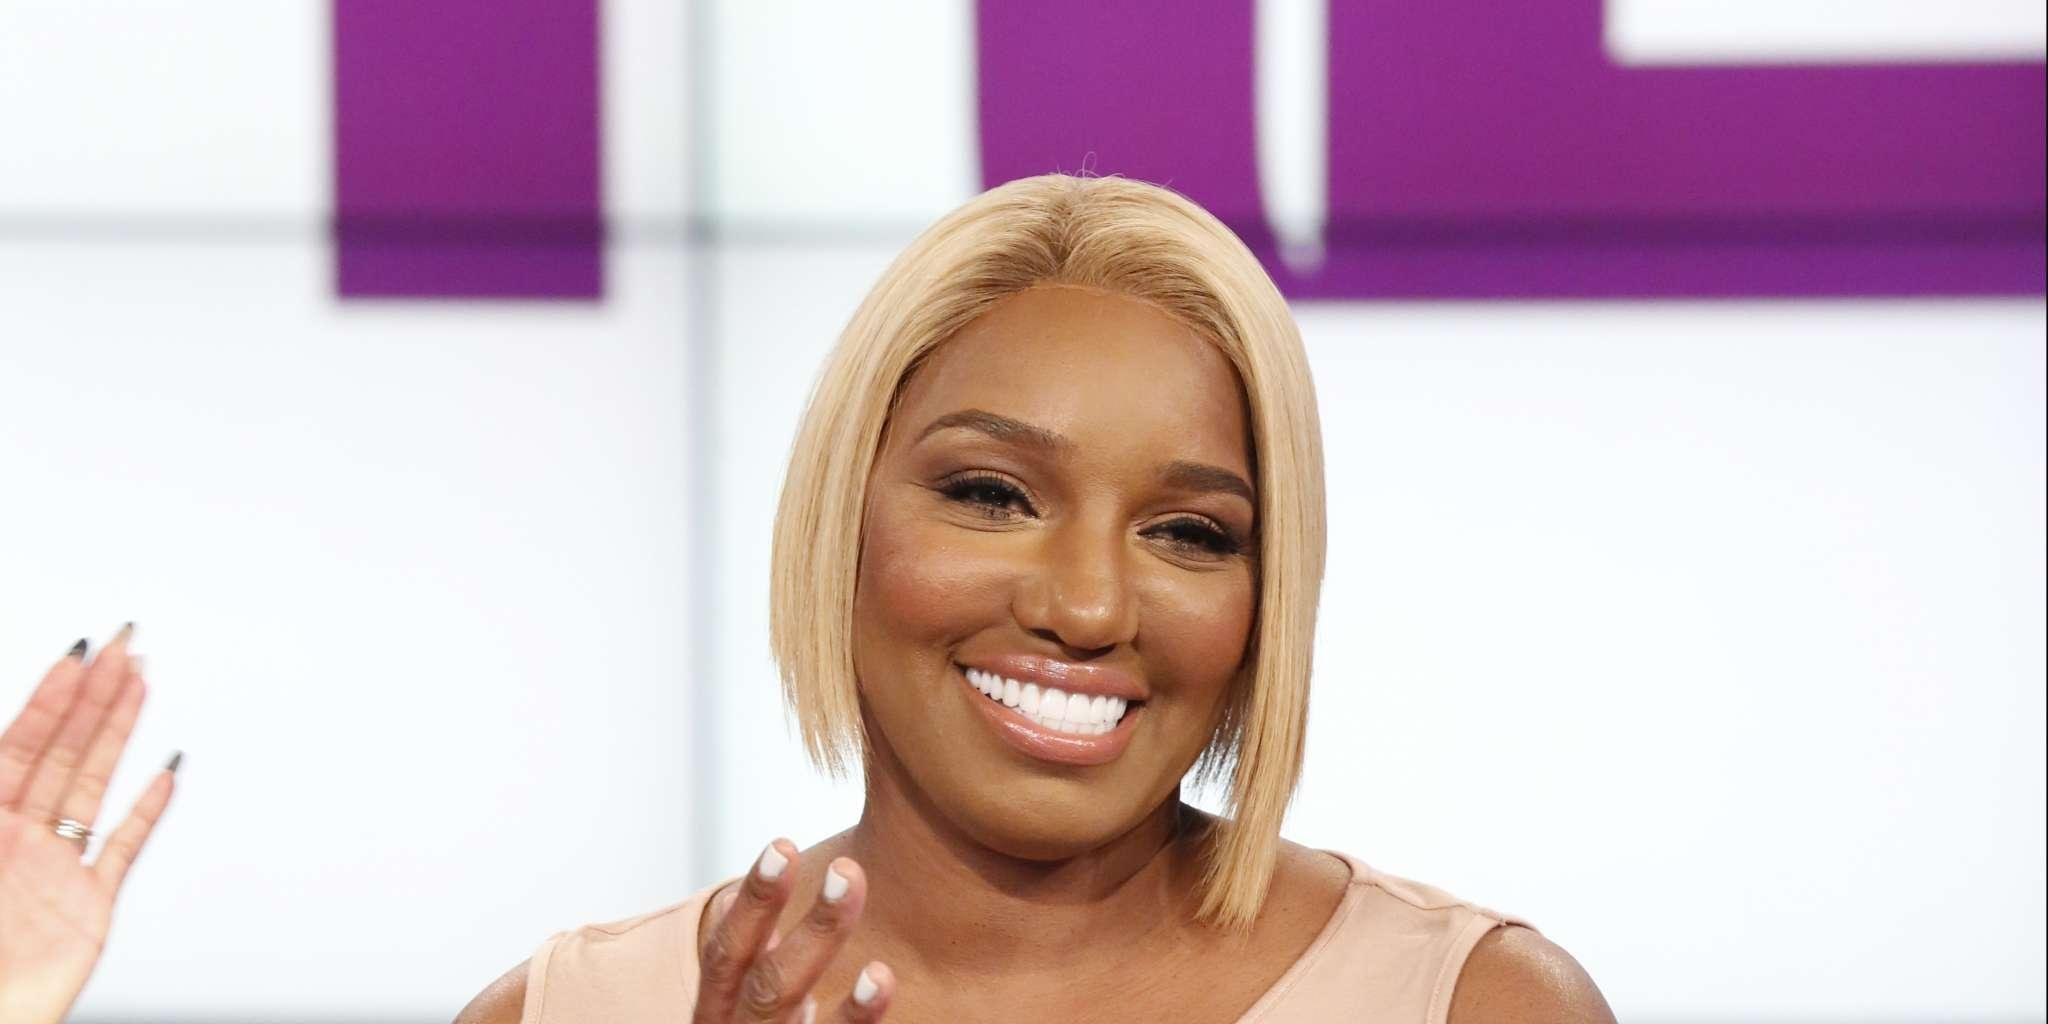 NeNe Leakes' Fans Are Glad To See Her In High Spirits After Slamming Gregg Leakes Breakup Rumors - Check Out Her Latest Pics